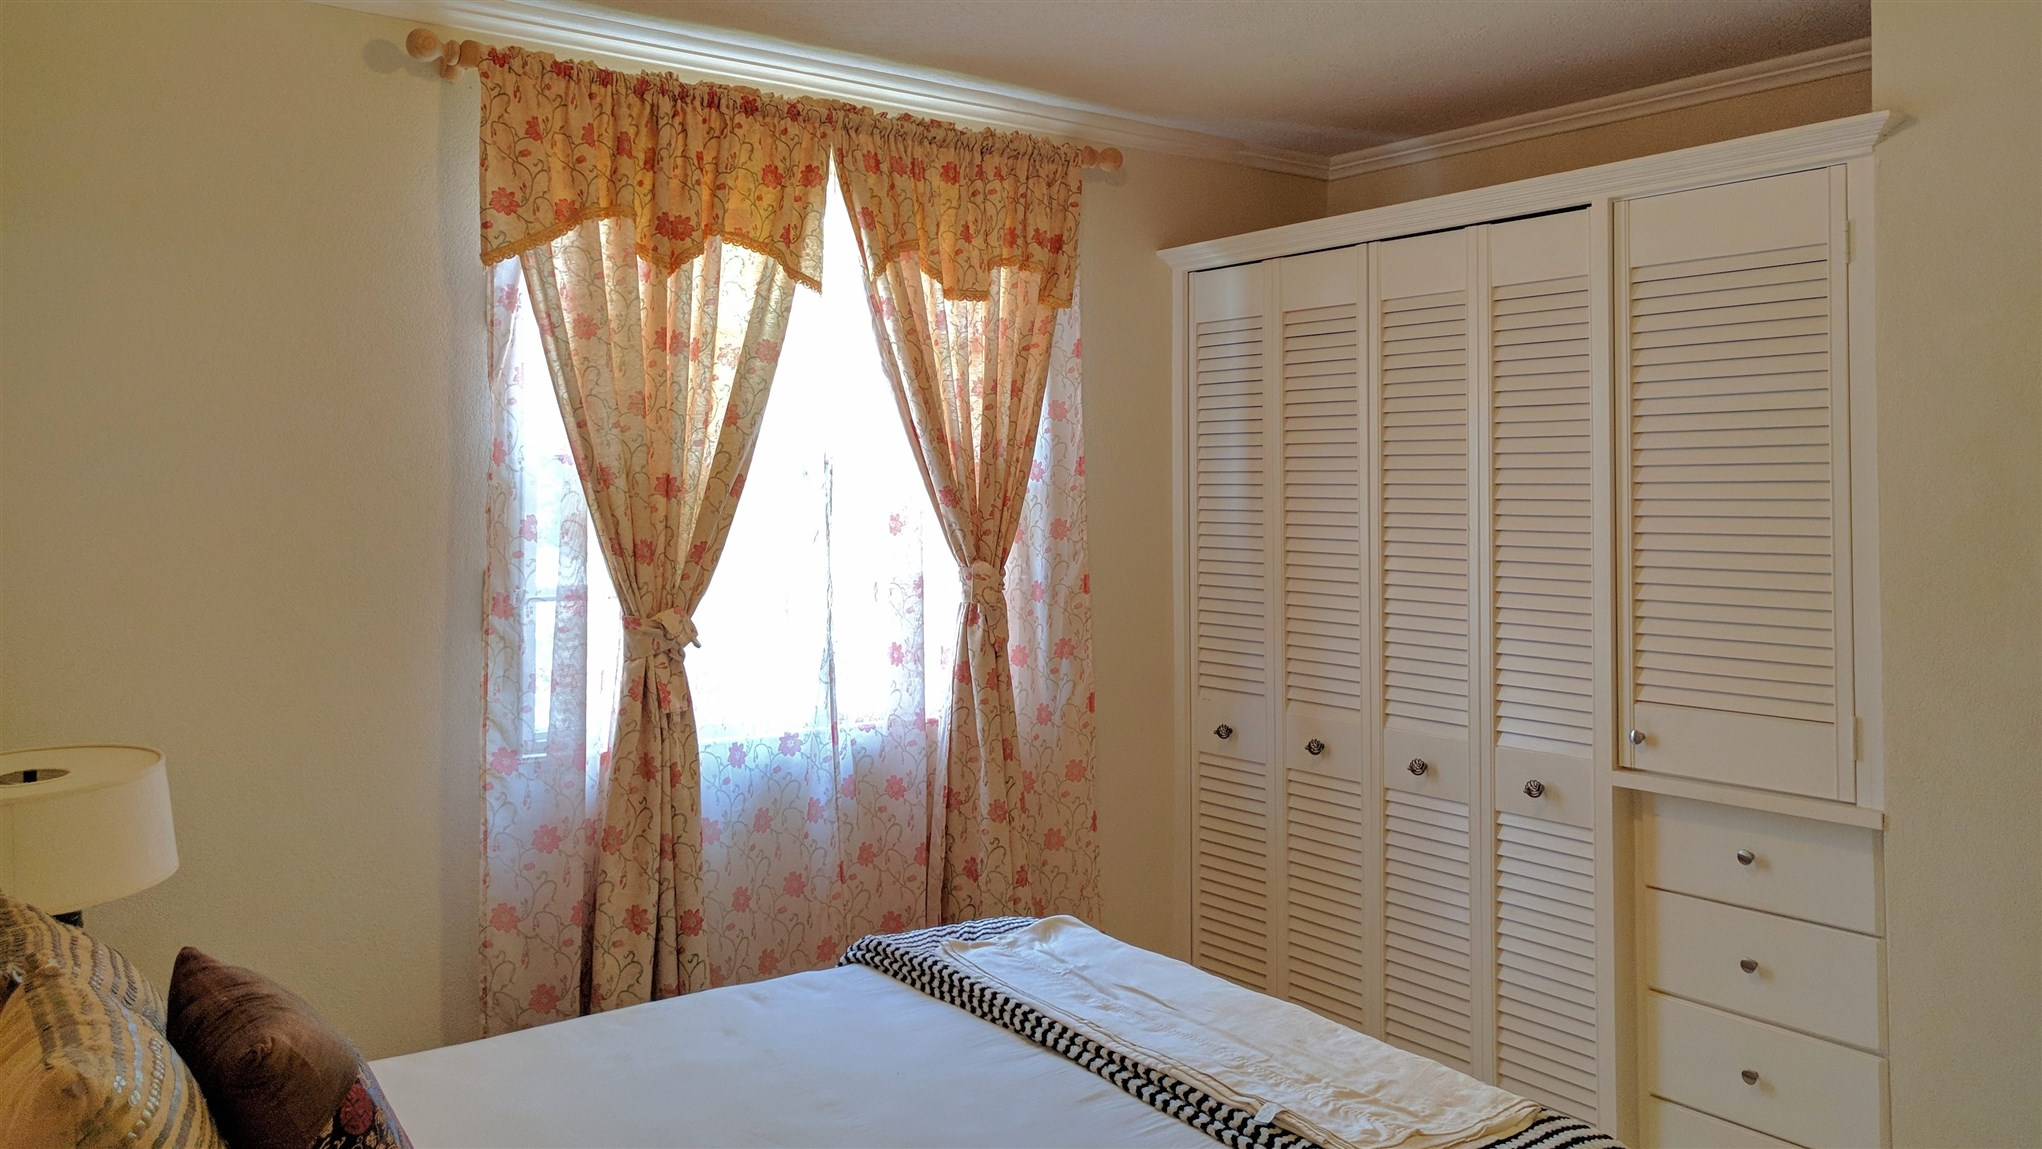 Bedroom, Ocean City, St. Philip